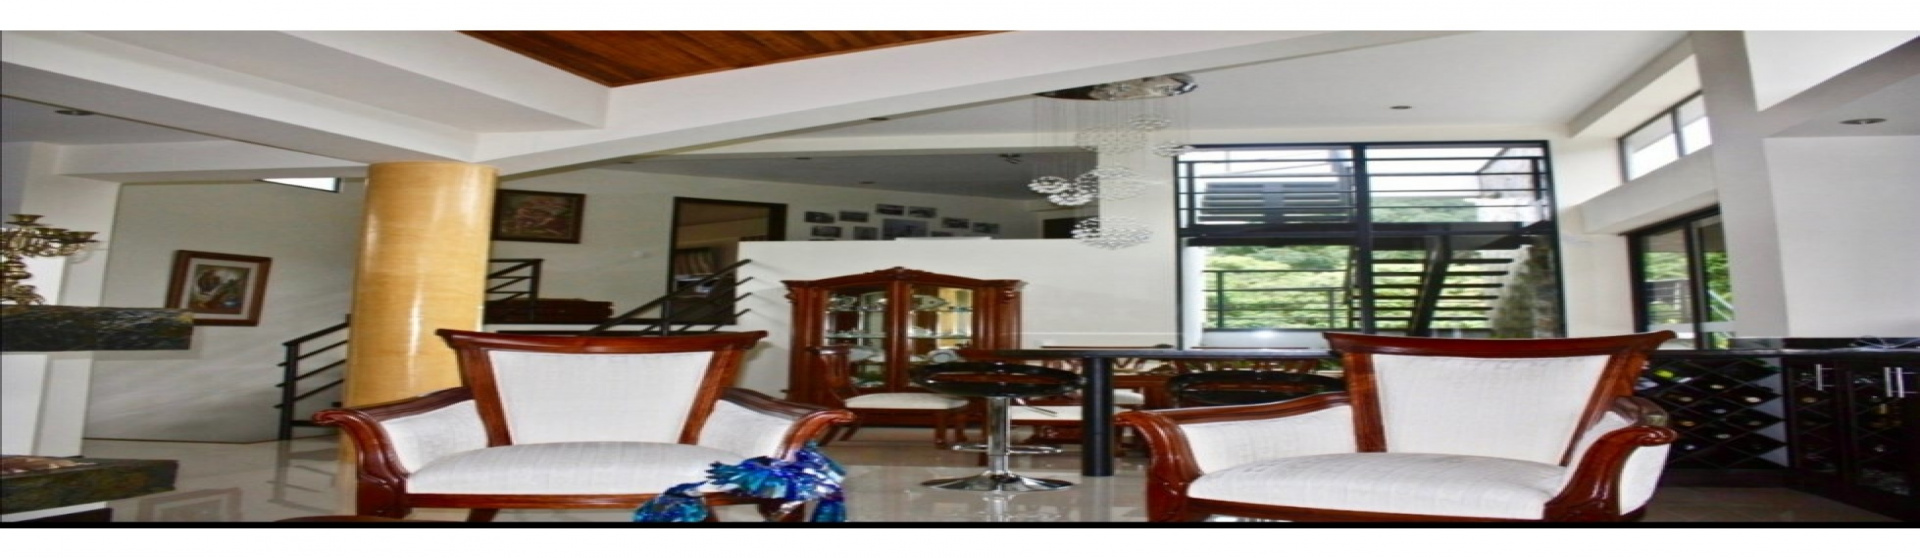 Colombia, Armenia, 5 Bedrooms Bedrooms, ,5 BathroomsBathrooms,Villa,For Sale,Colombia, Armenia,20691